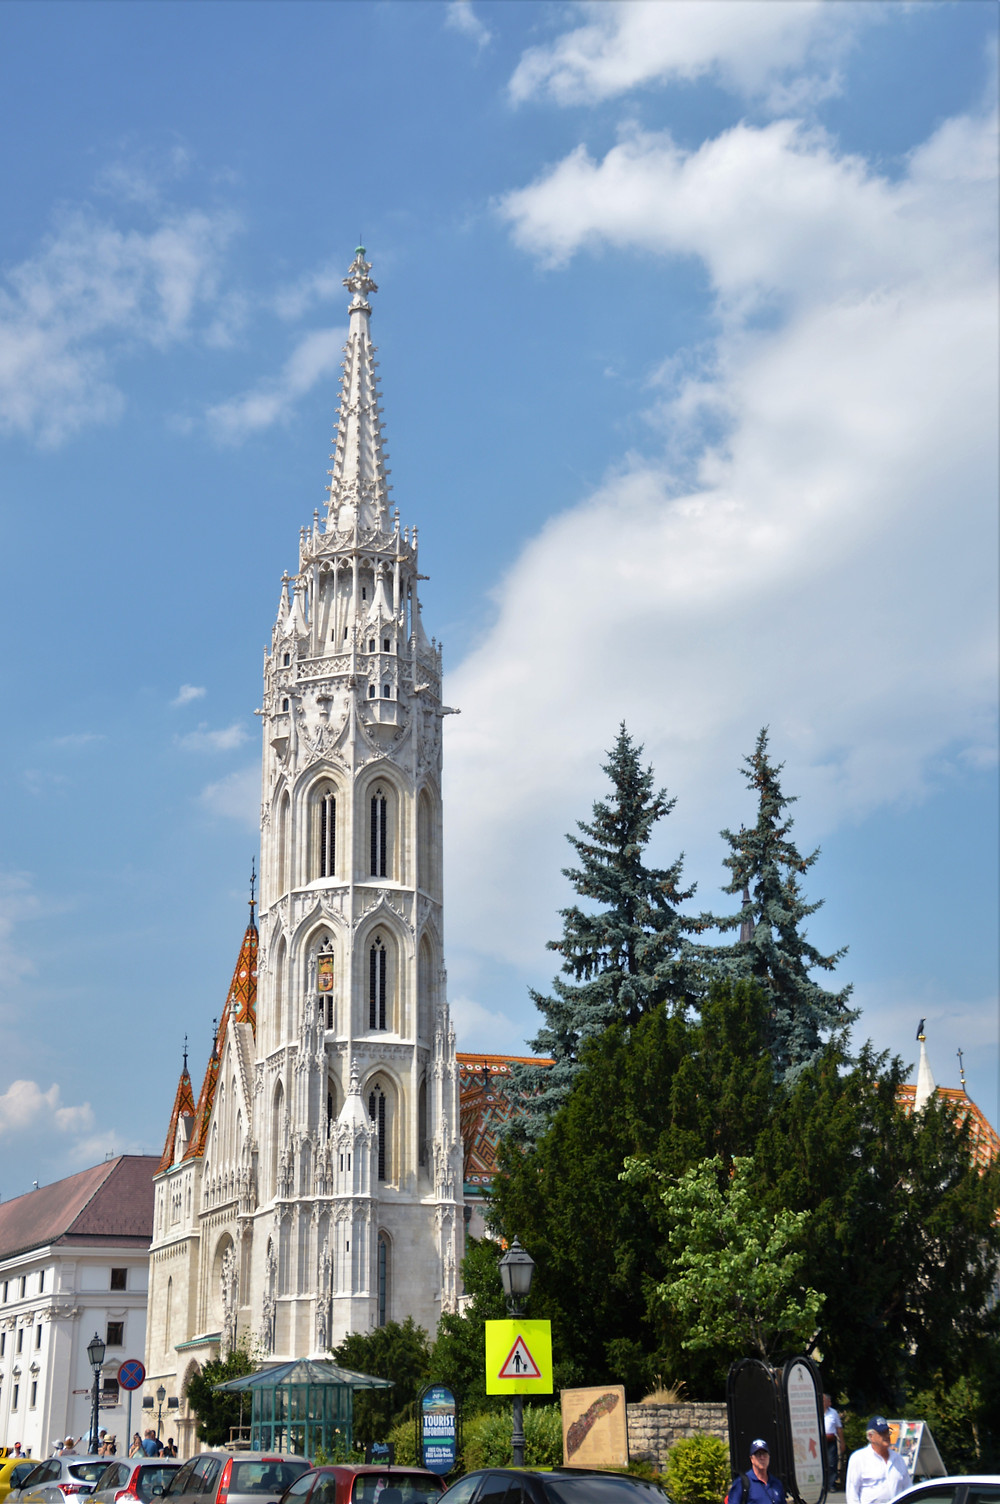 The southwest bell tower of Matthias Church built by King Matthias Corvinus collapsed in 1384 and was rebuilt in 1470